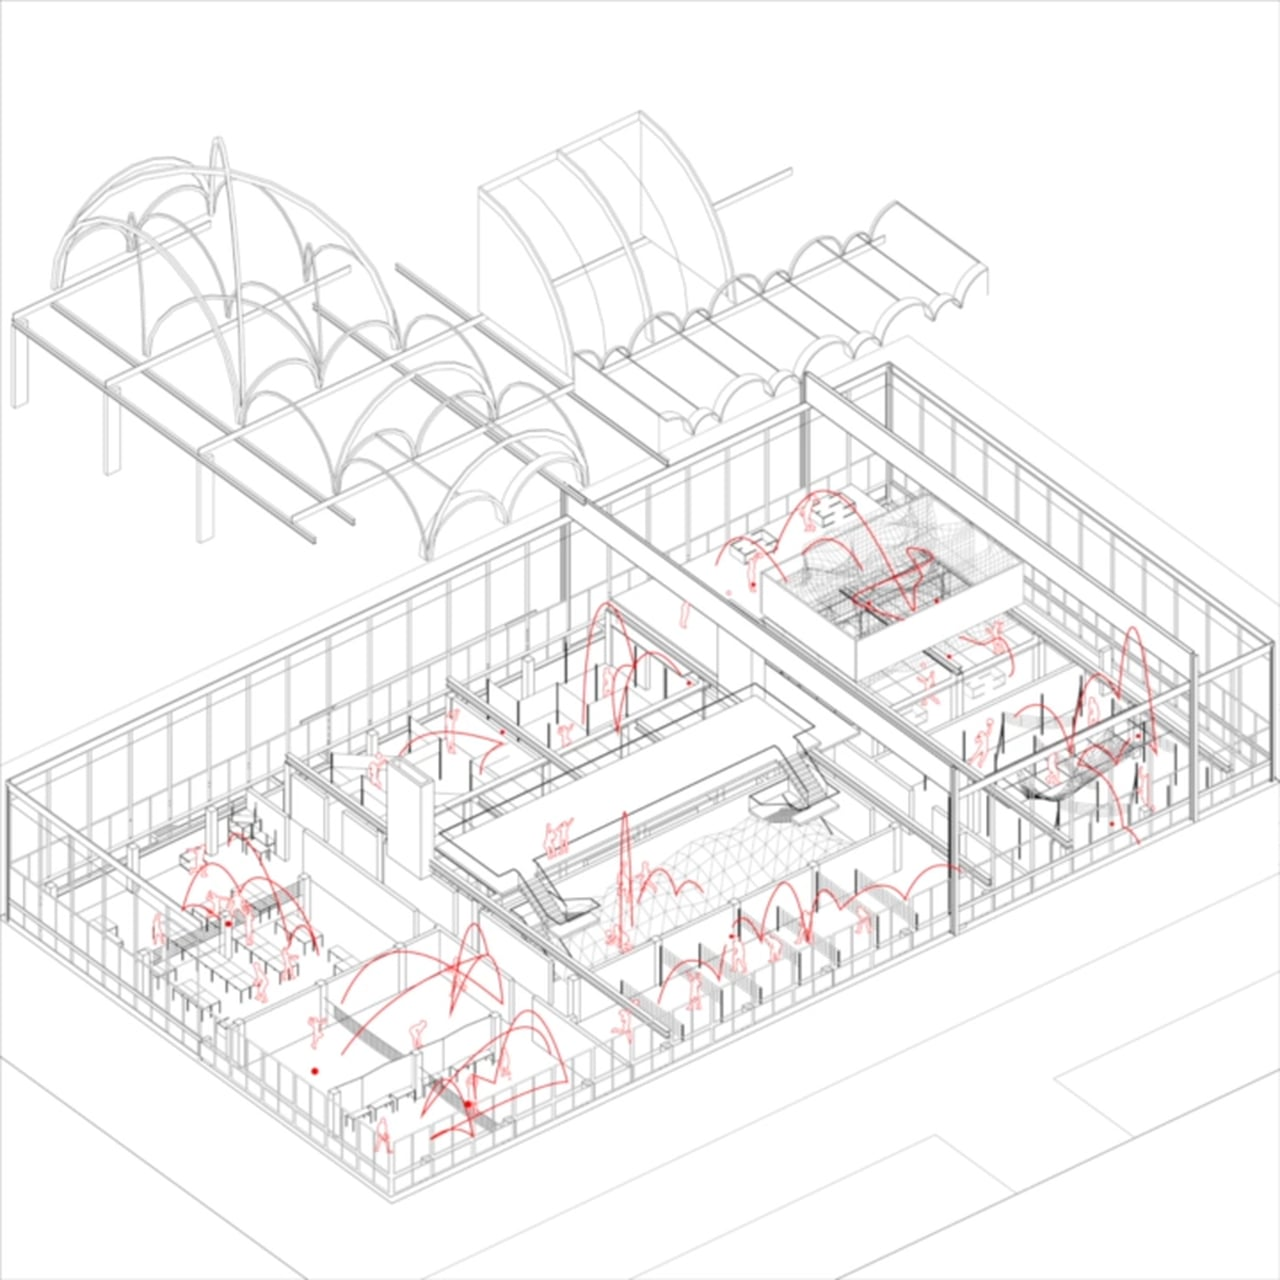 1280x1280 Violence Of Volleyball Bernard Tschumi And Architecture